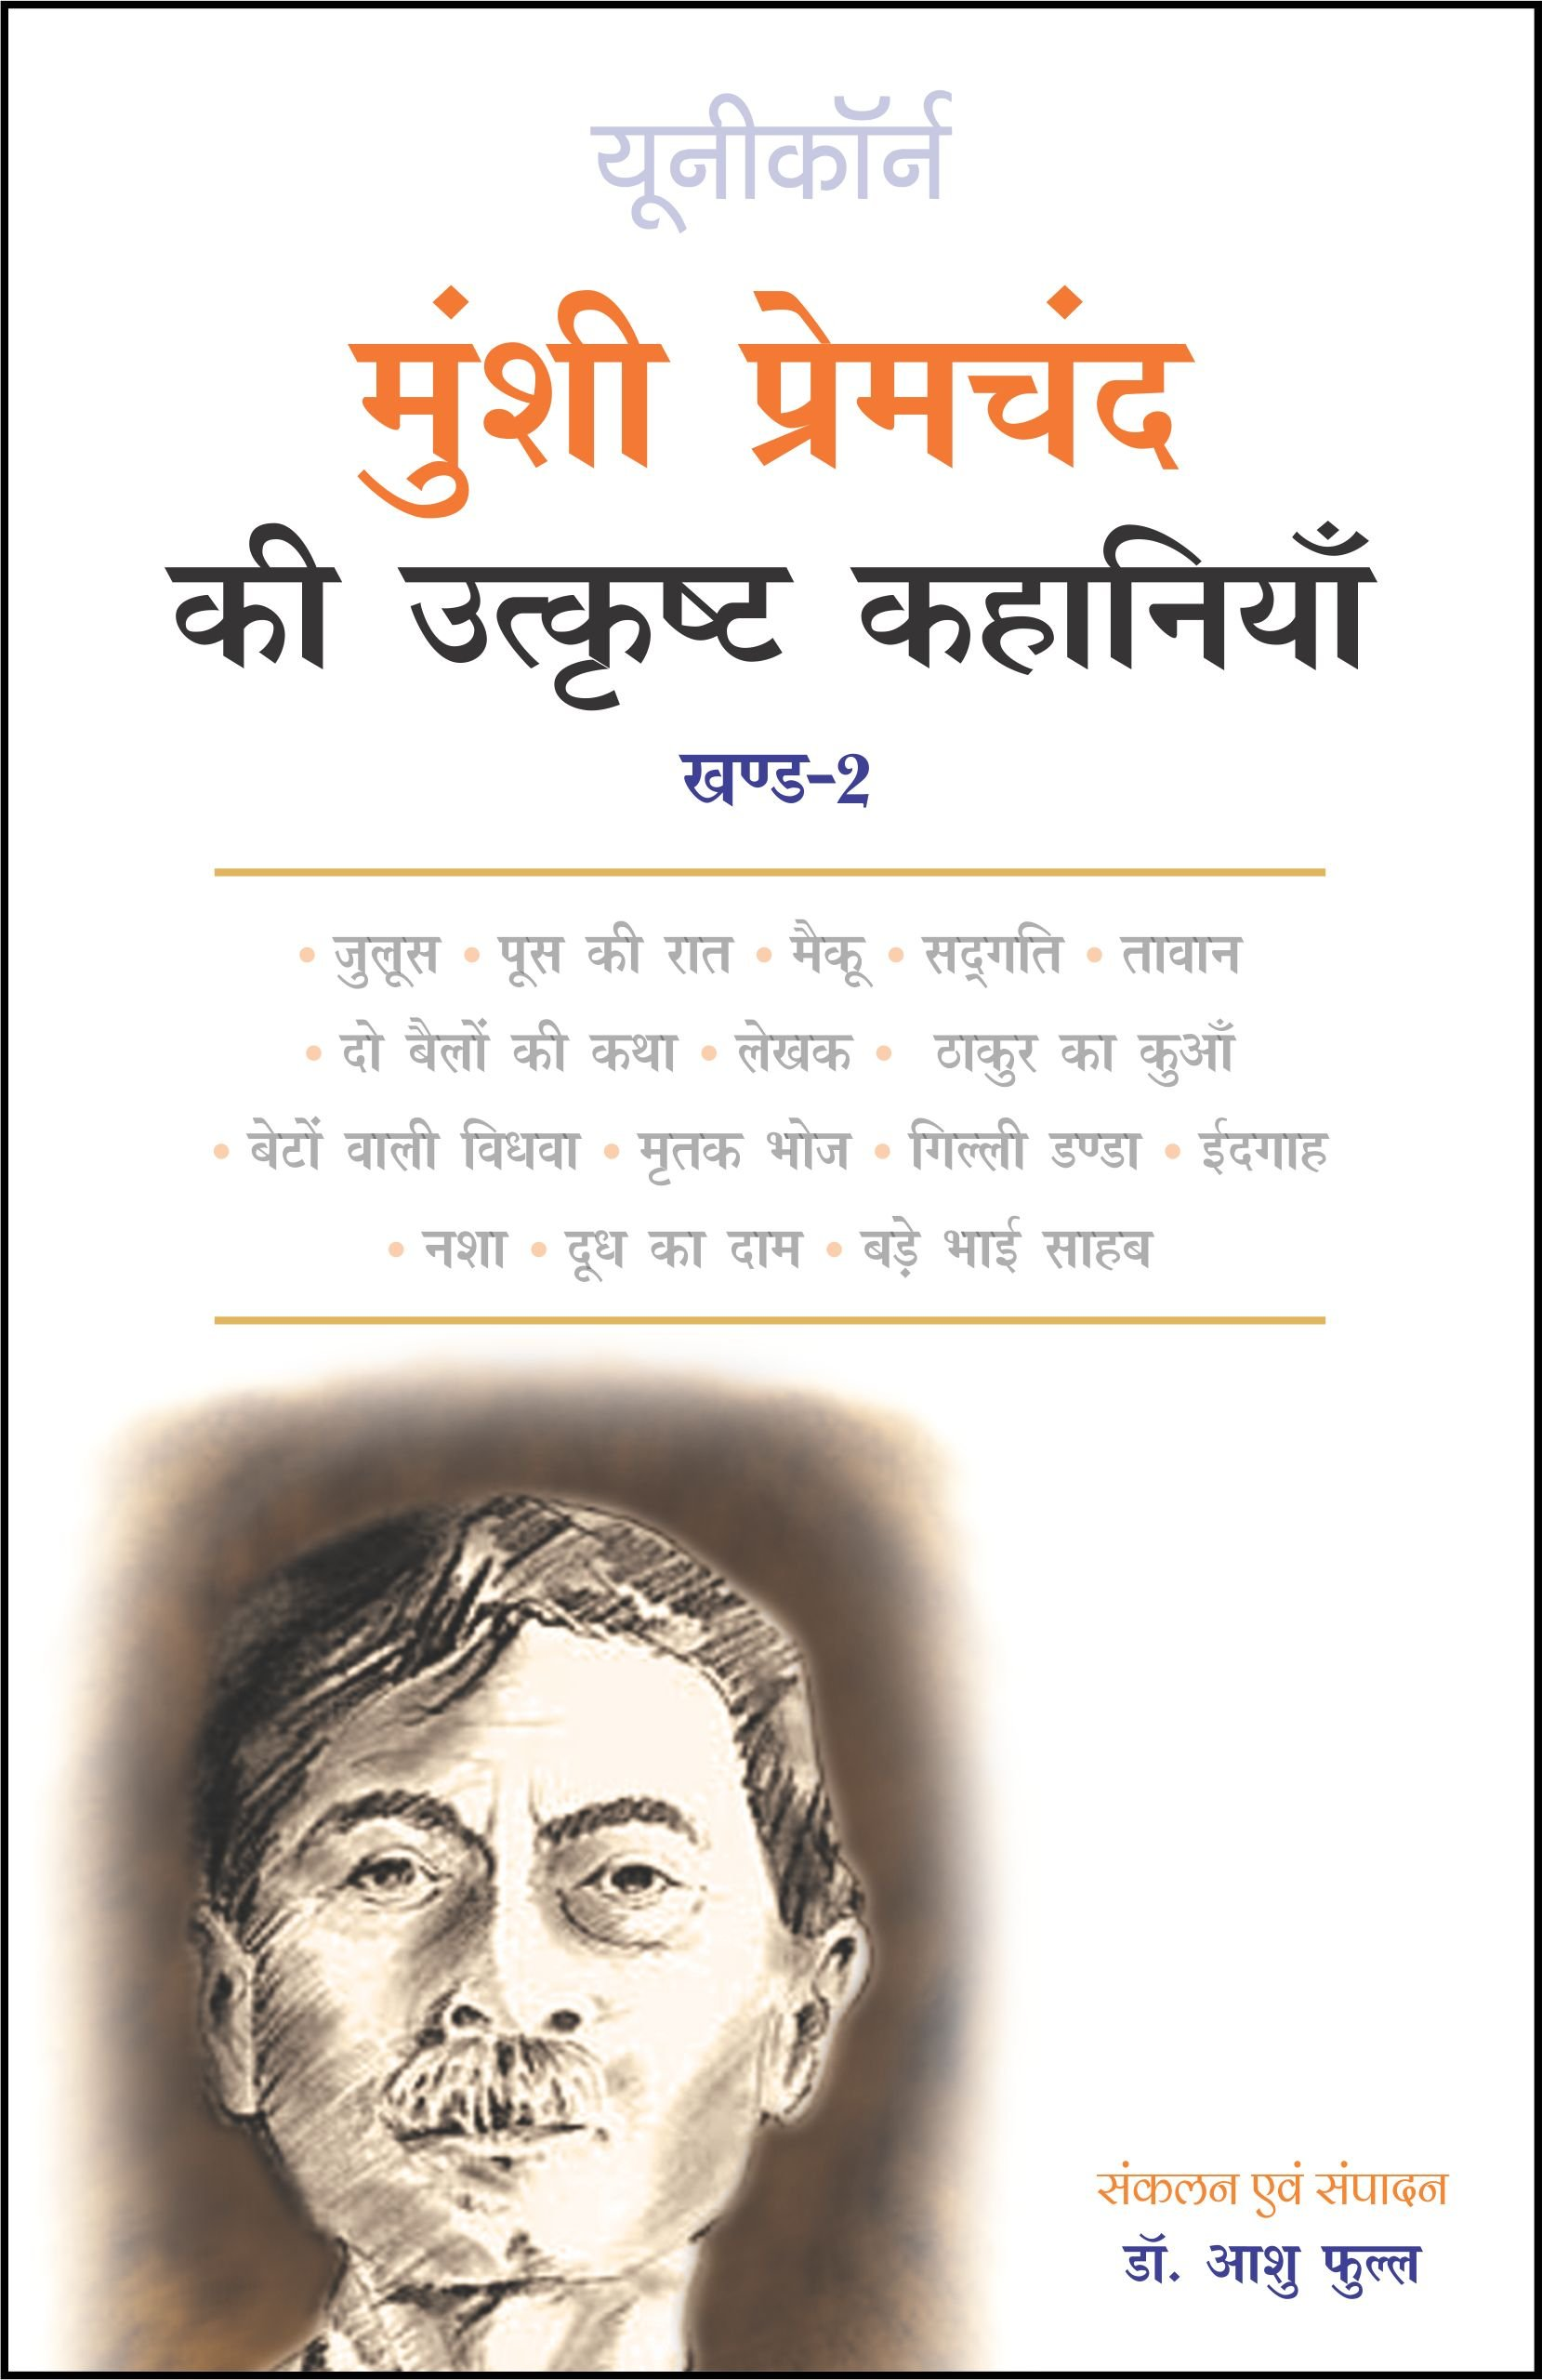 Premchand Ki Kahani In Hindi Pdf